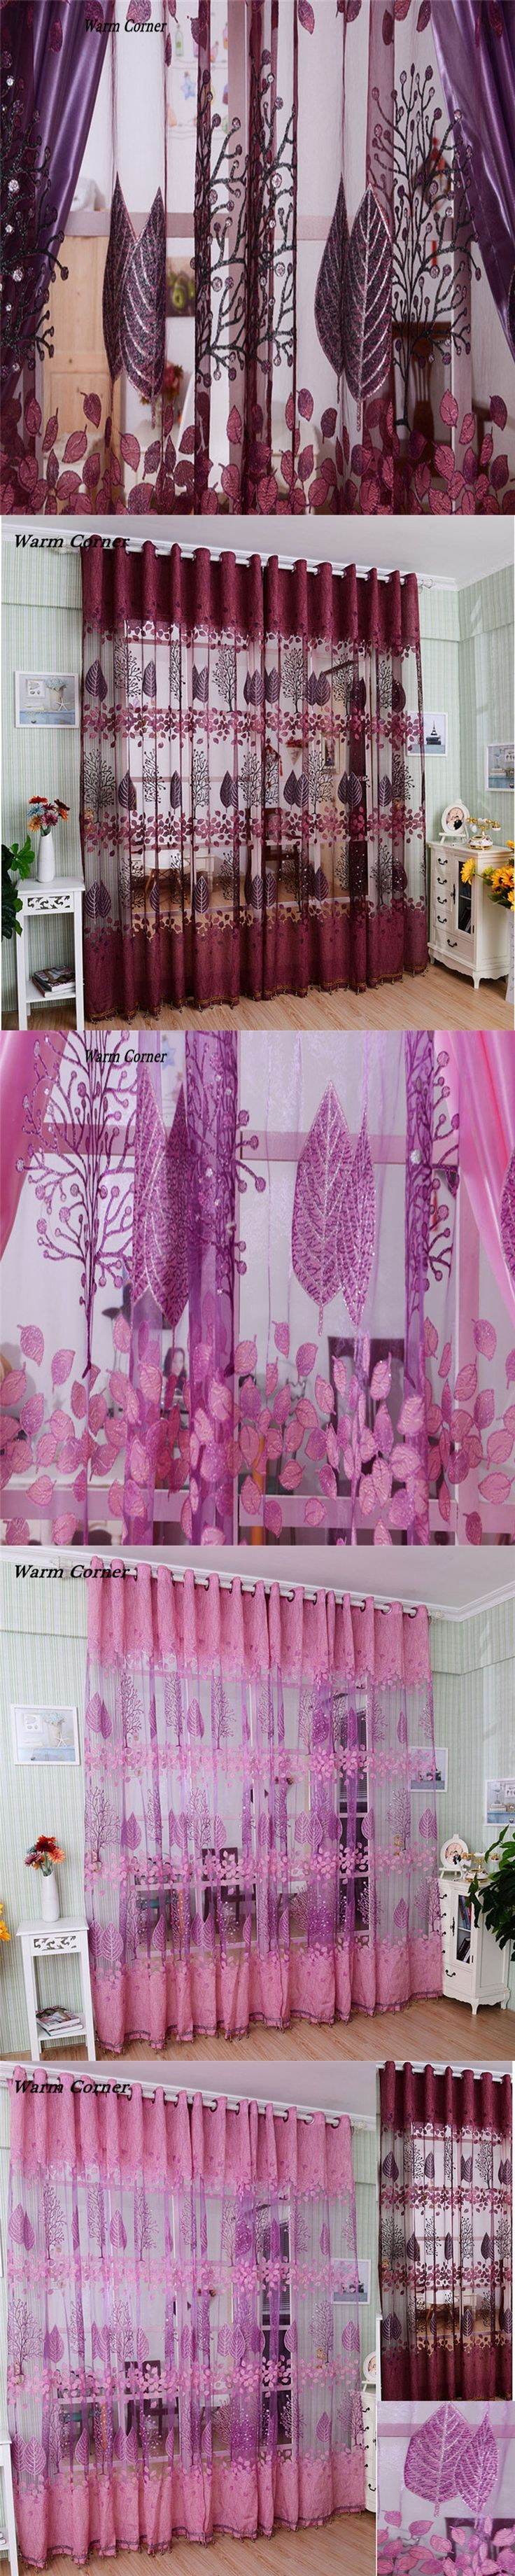 2017 LM Leaf Hollow Window Screens Door Balcony Curtain Panel Sheer Cover  Free Shipping Sept 01